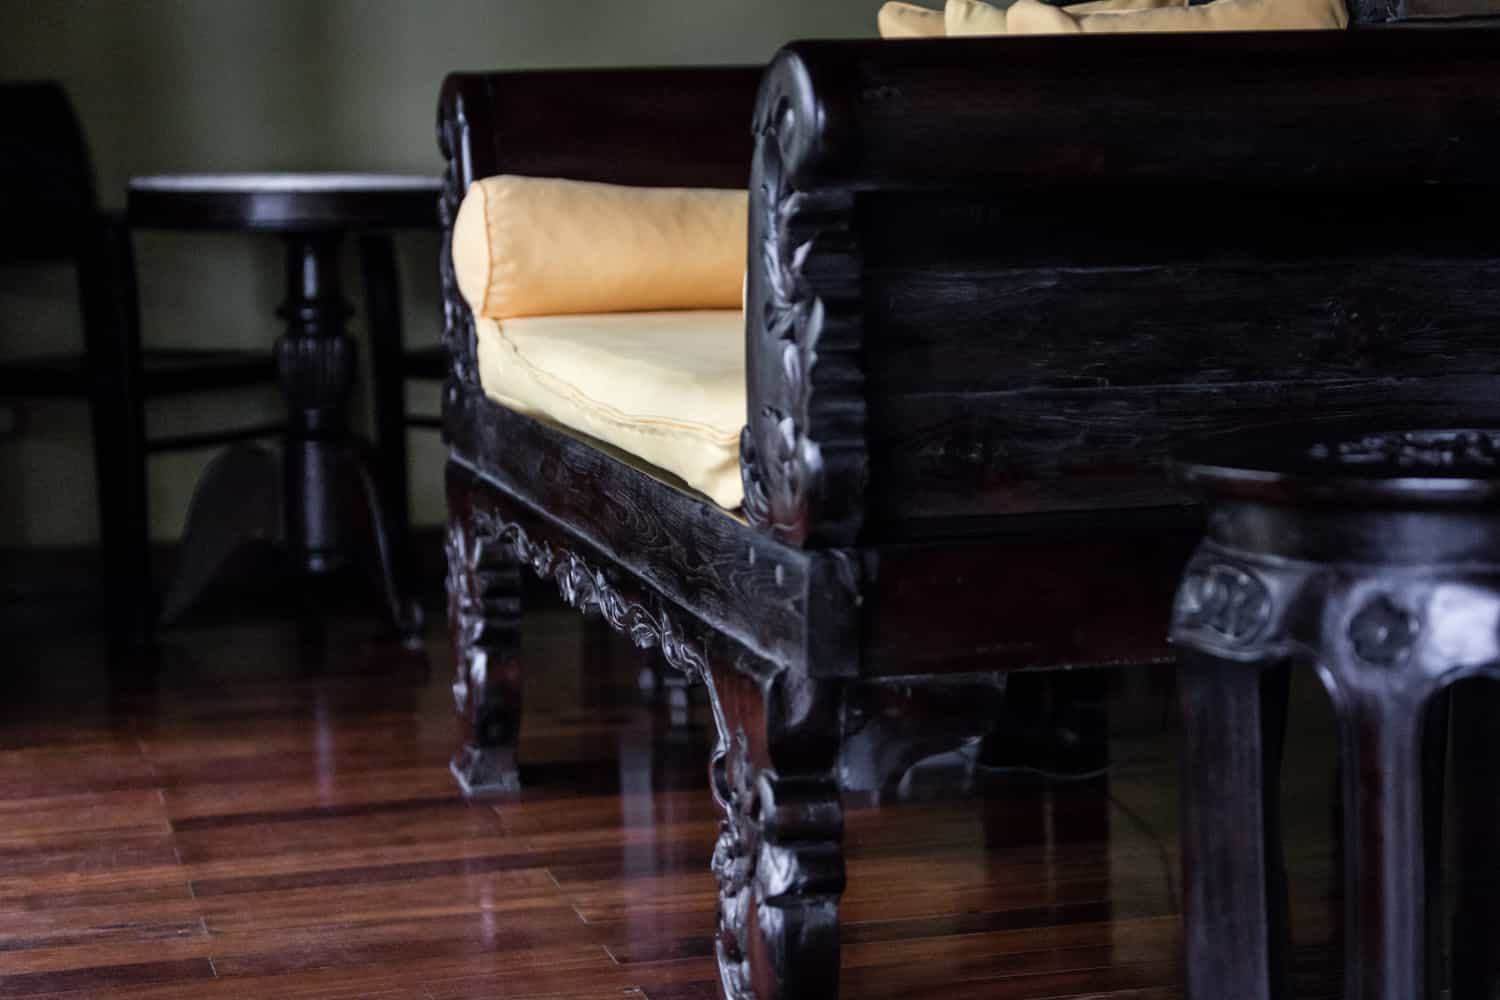 Solid wood floor in front of ornate solid wood couch at Rio Celeste Hideaway Hotel.